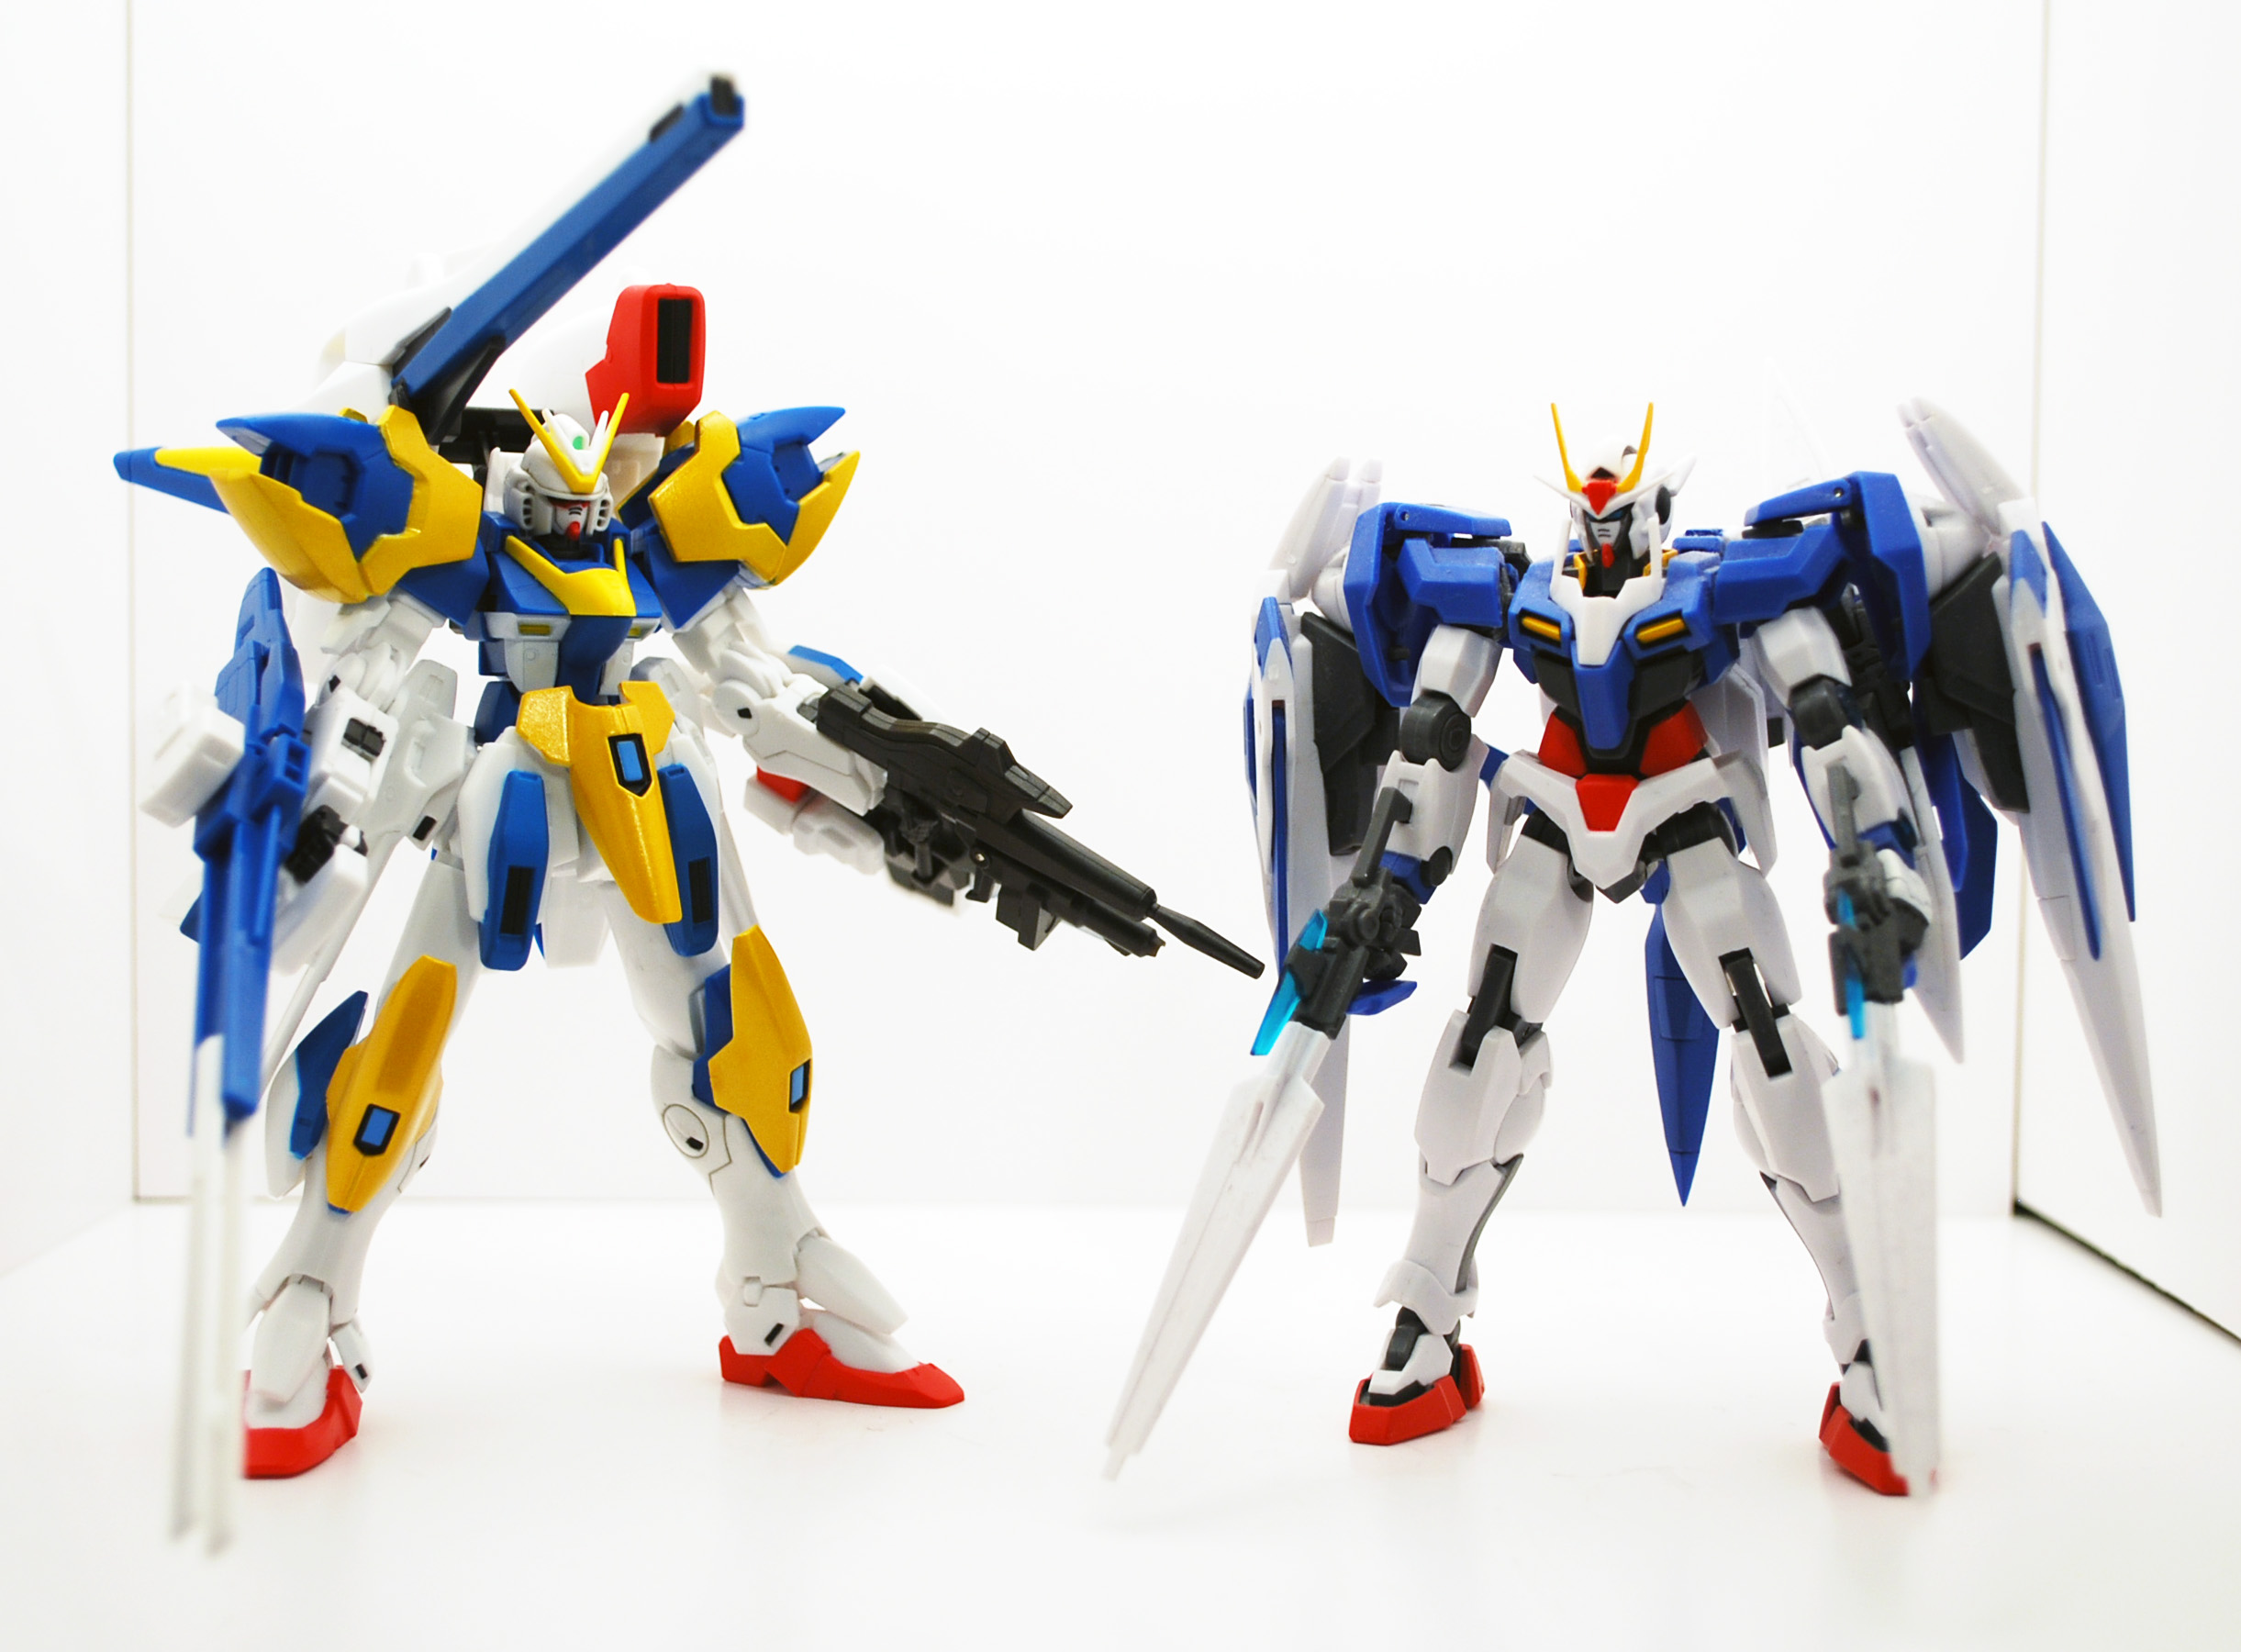 Mecha Damashii Toys V2 Assault Buster Gundam